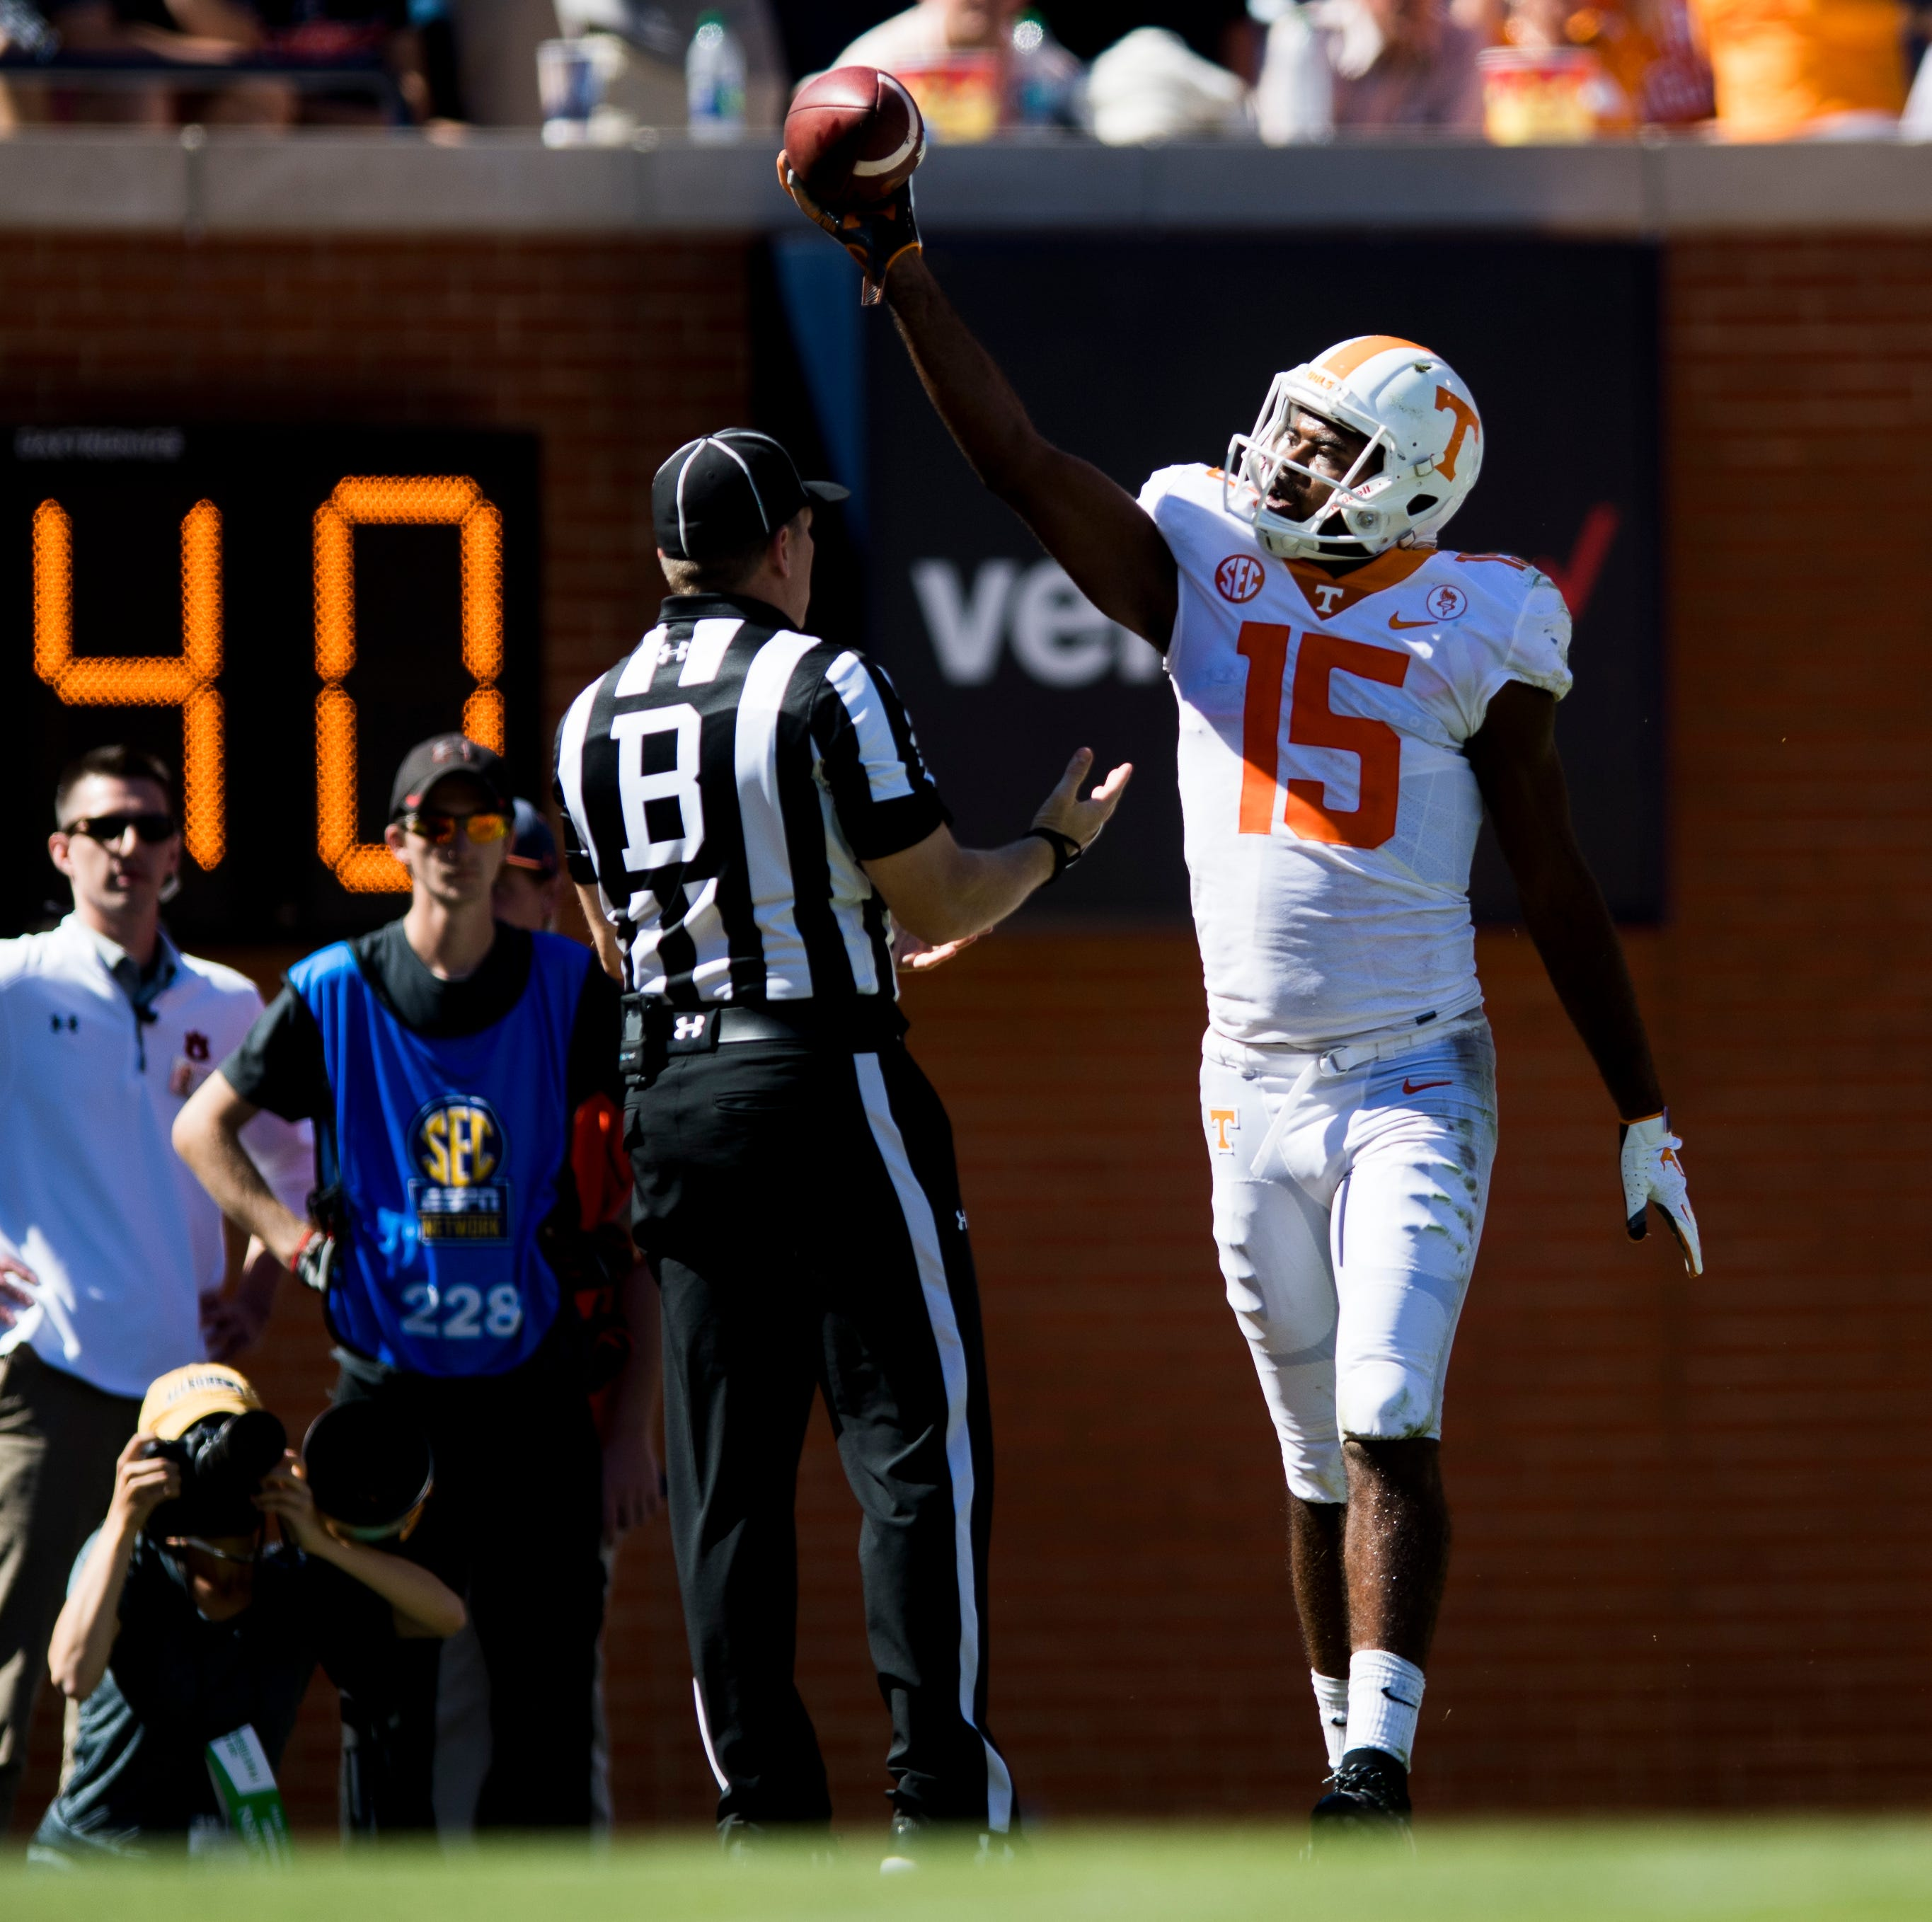 UT Vols football finds something extra in Jarrett Guarantano, receivers to raise hopes